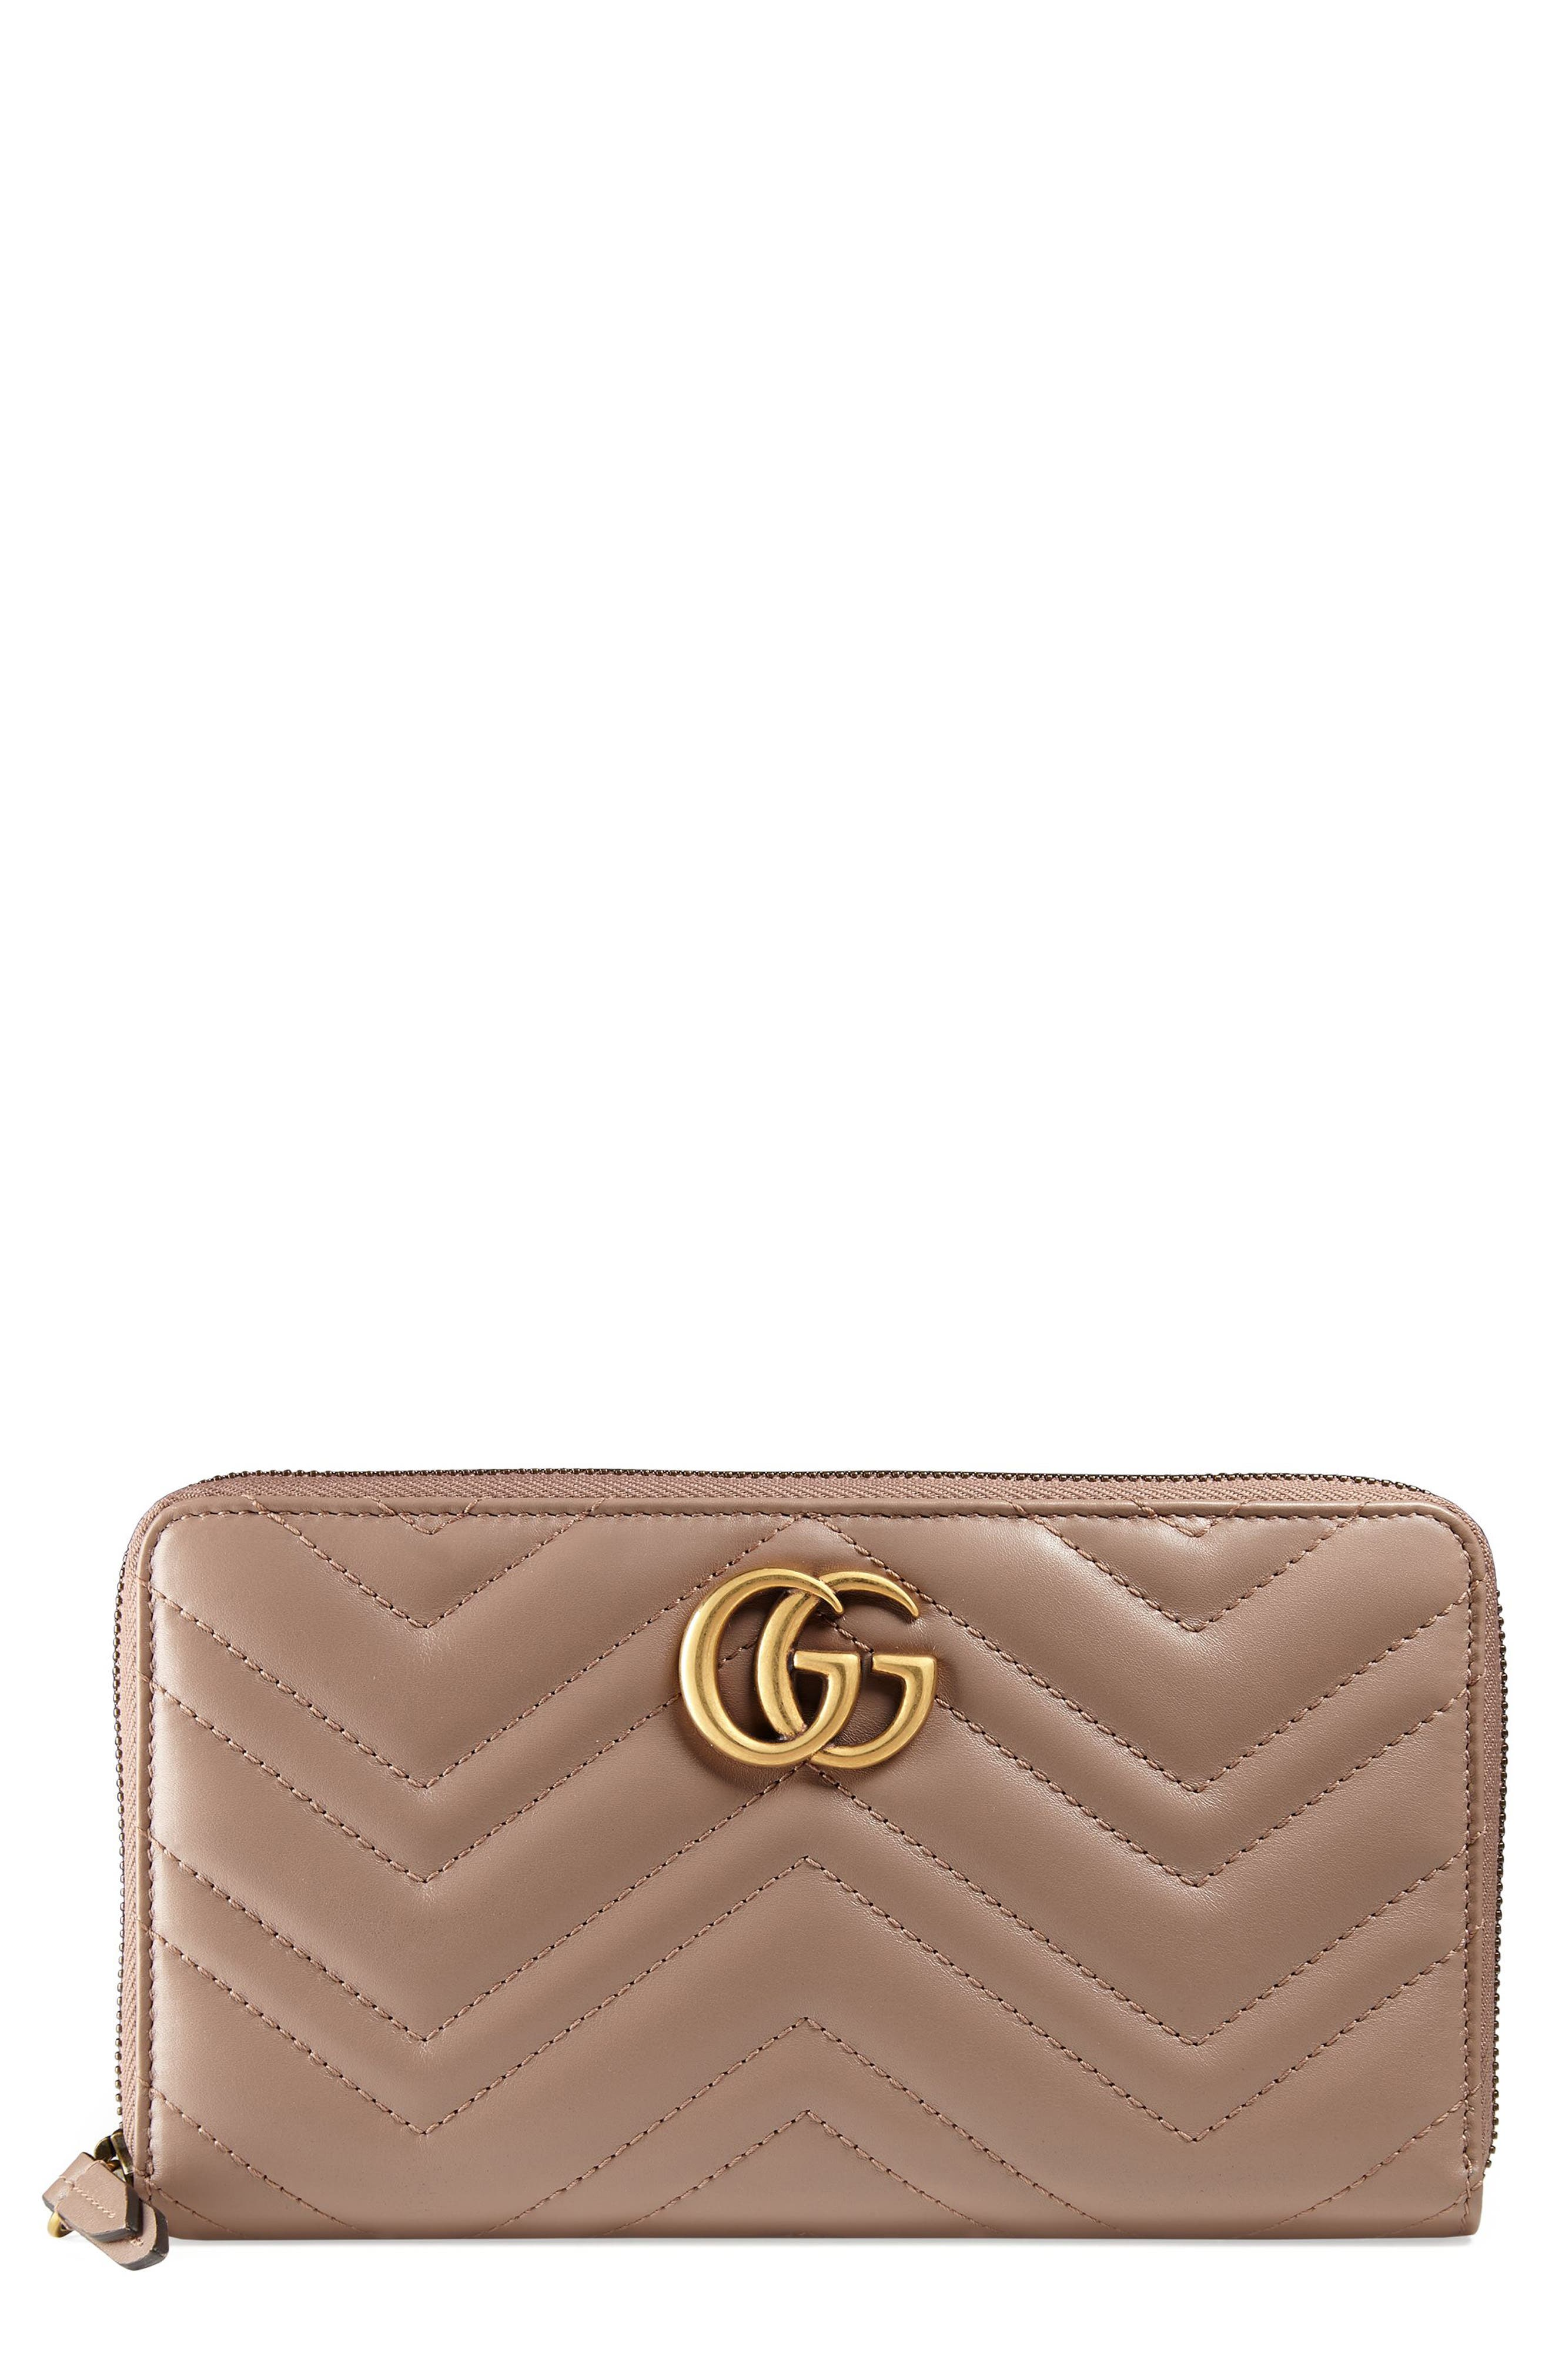 Alternate Image 1 Selected - Gucci GG Marmont Matelassé Leather Zip-Around Wallet